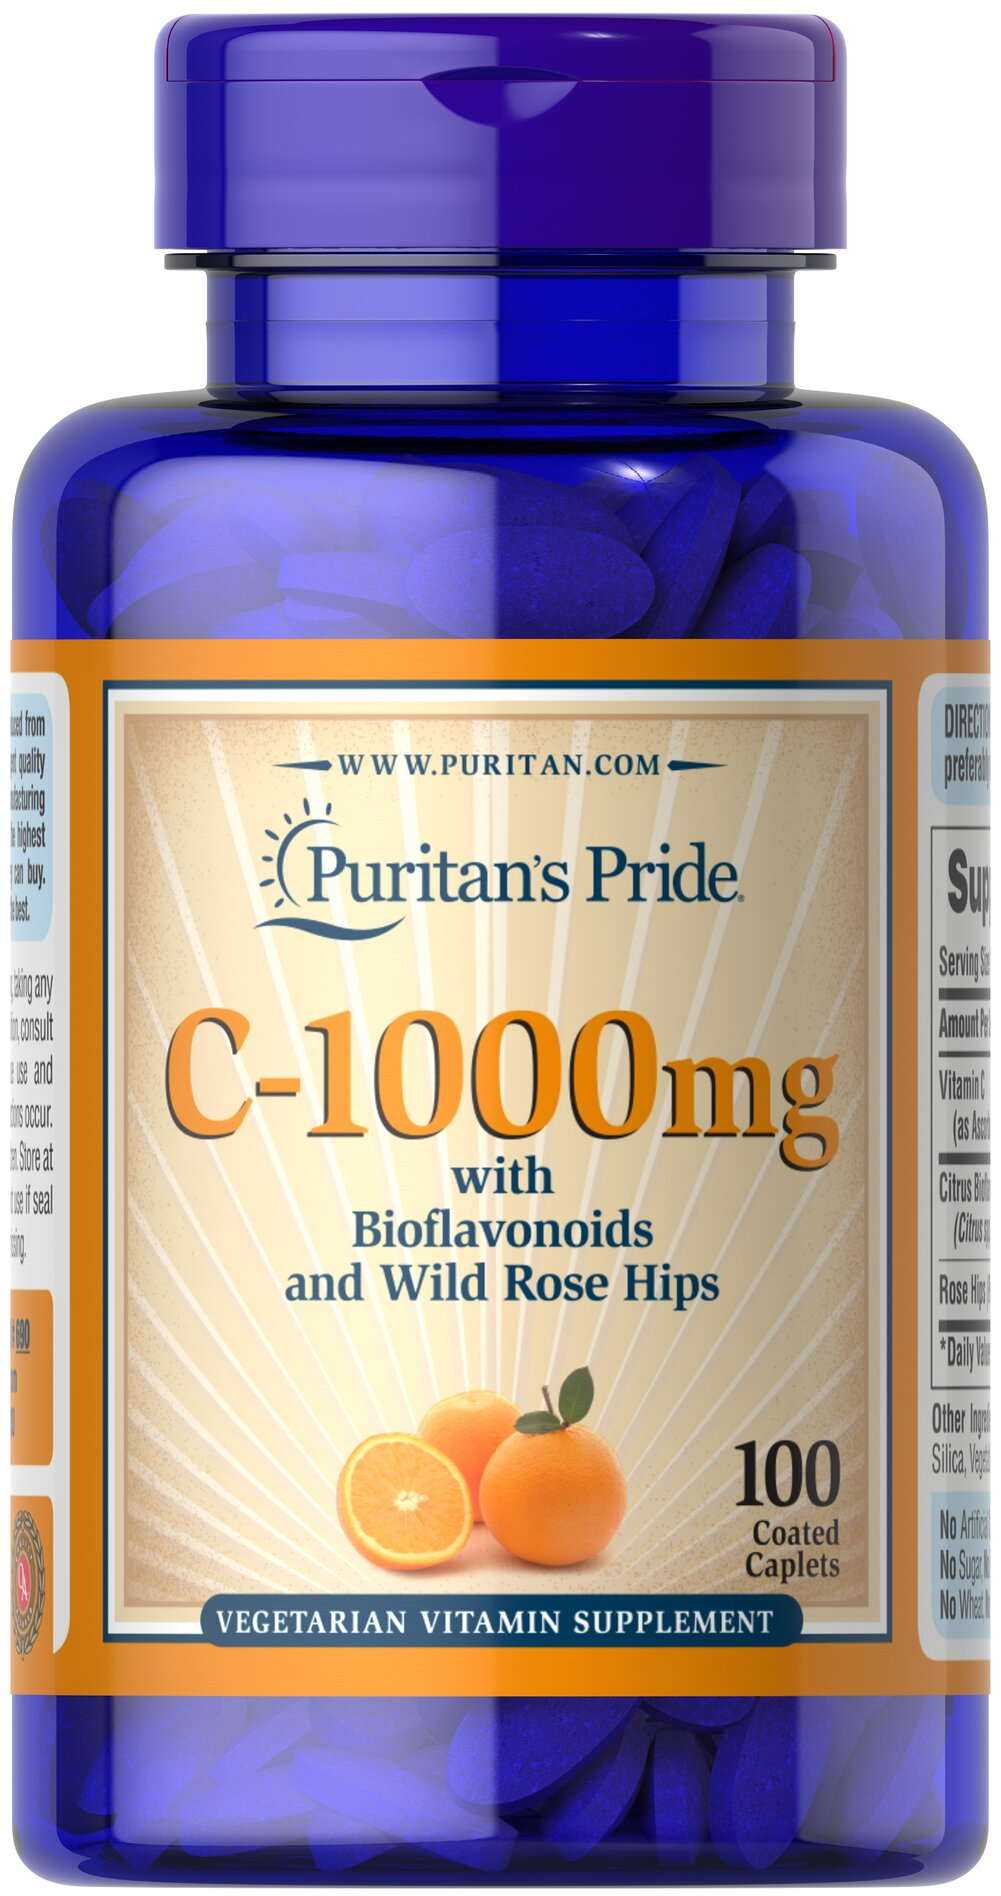 Vitamin C-1000 mg with Bioflavonoids & Rose Hips Thumbnail Alternate Bottle View